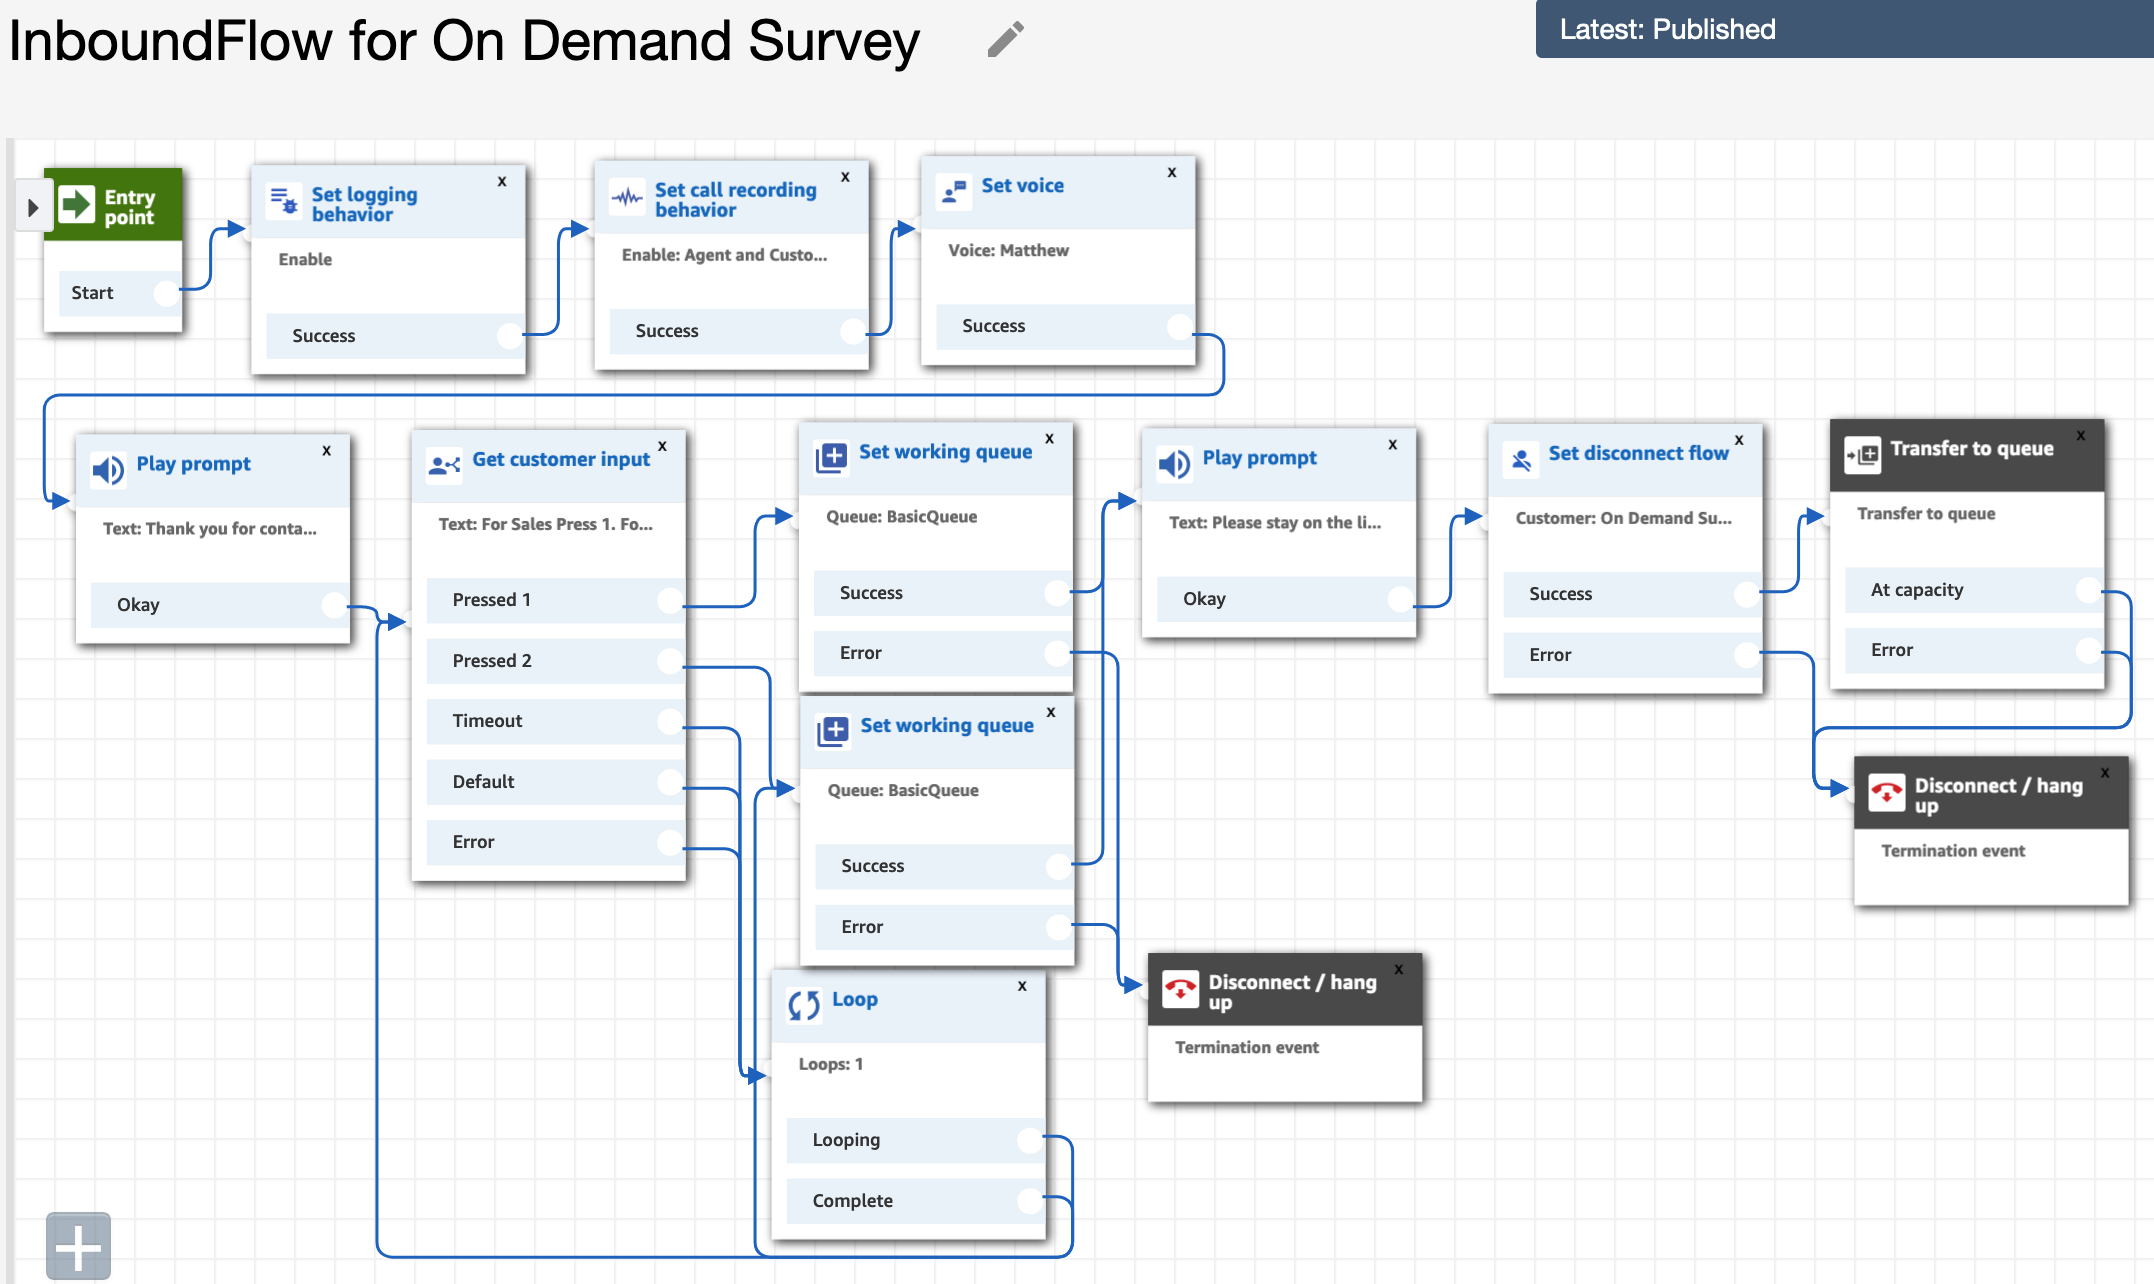 Sample contact flow for an inbound customer experience for on-demand post call survey